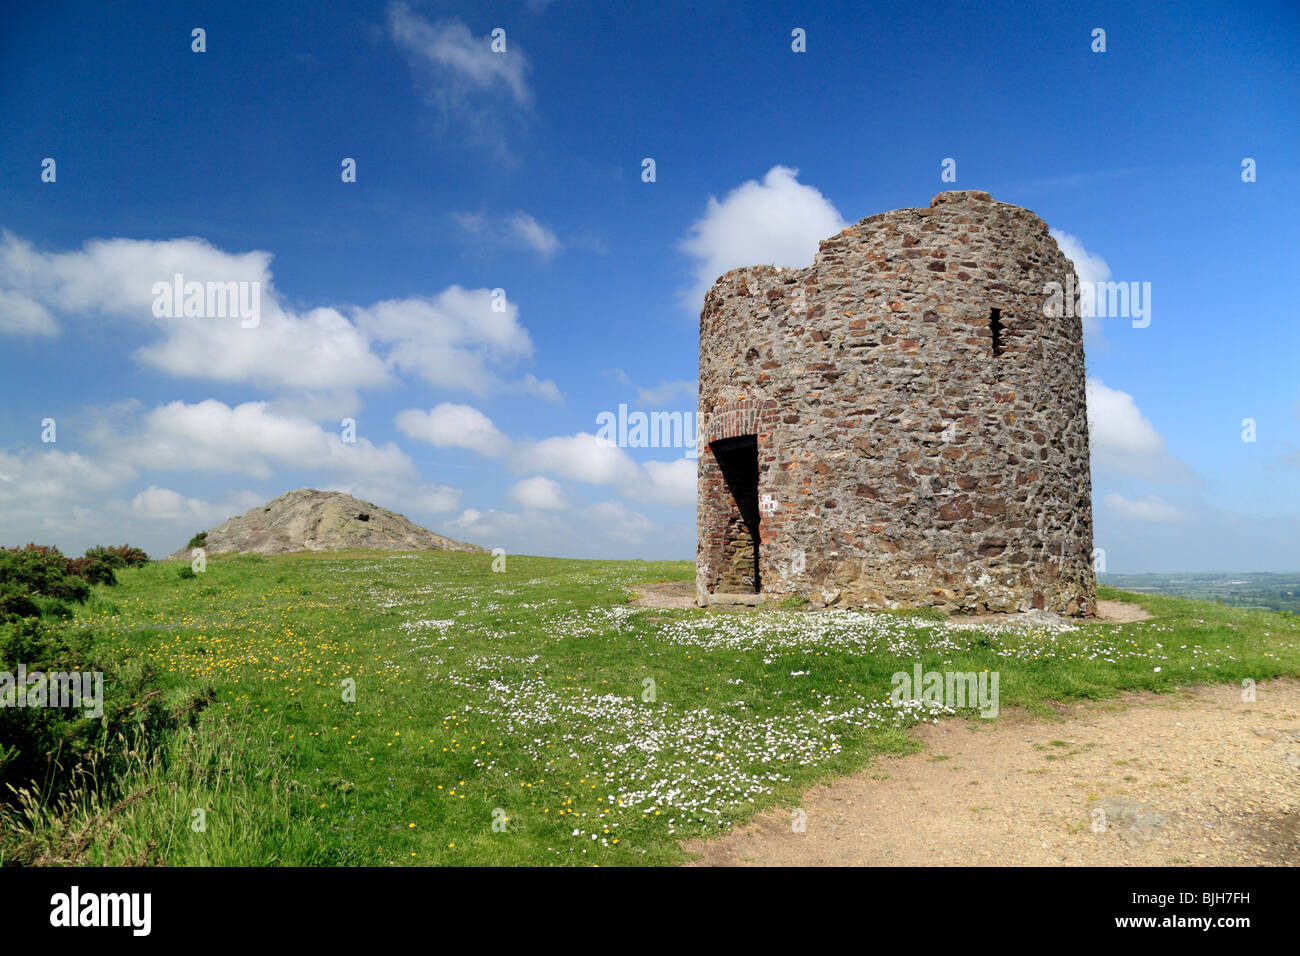 Memorial to the 1798 Rebellion on top of Vinegar Hill, Enniscorthy, Ireland. - Stock Image